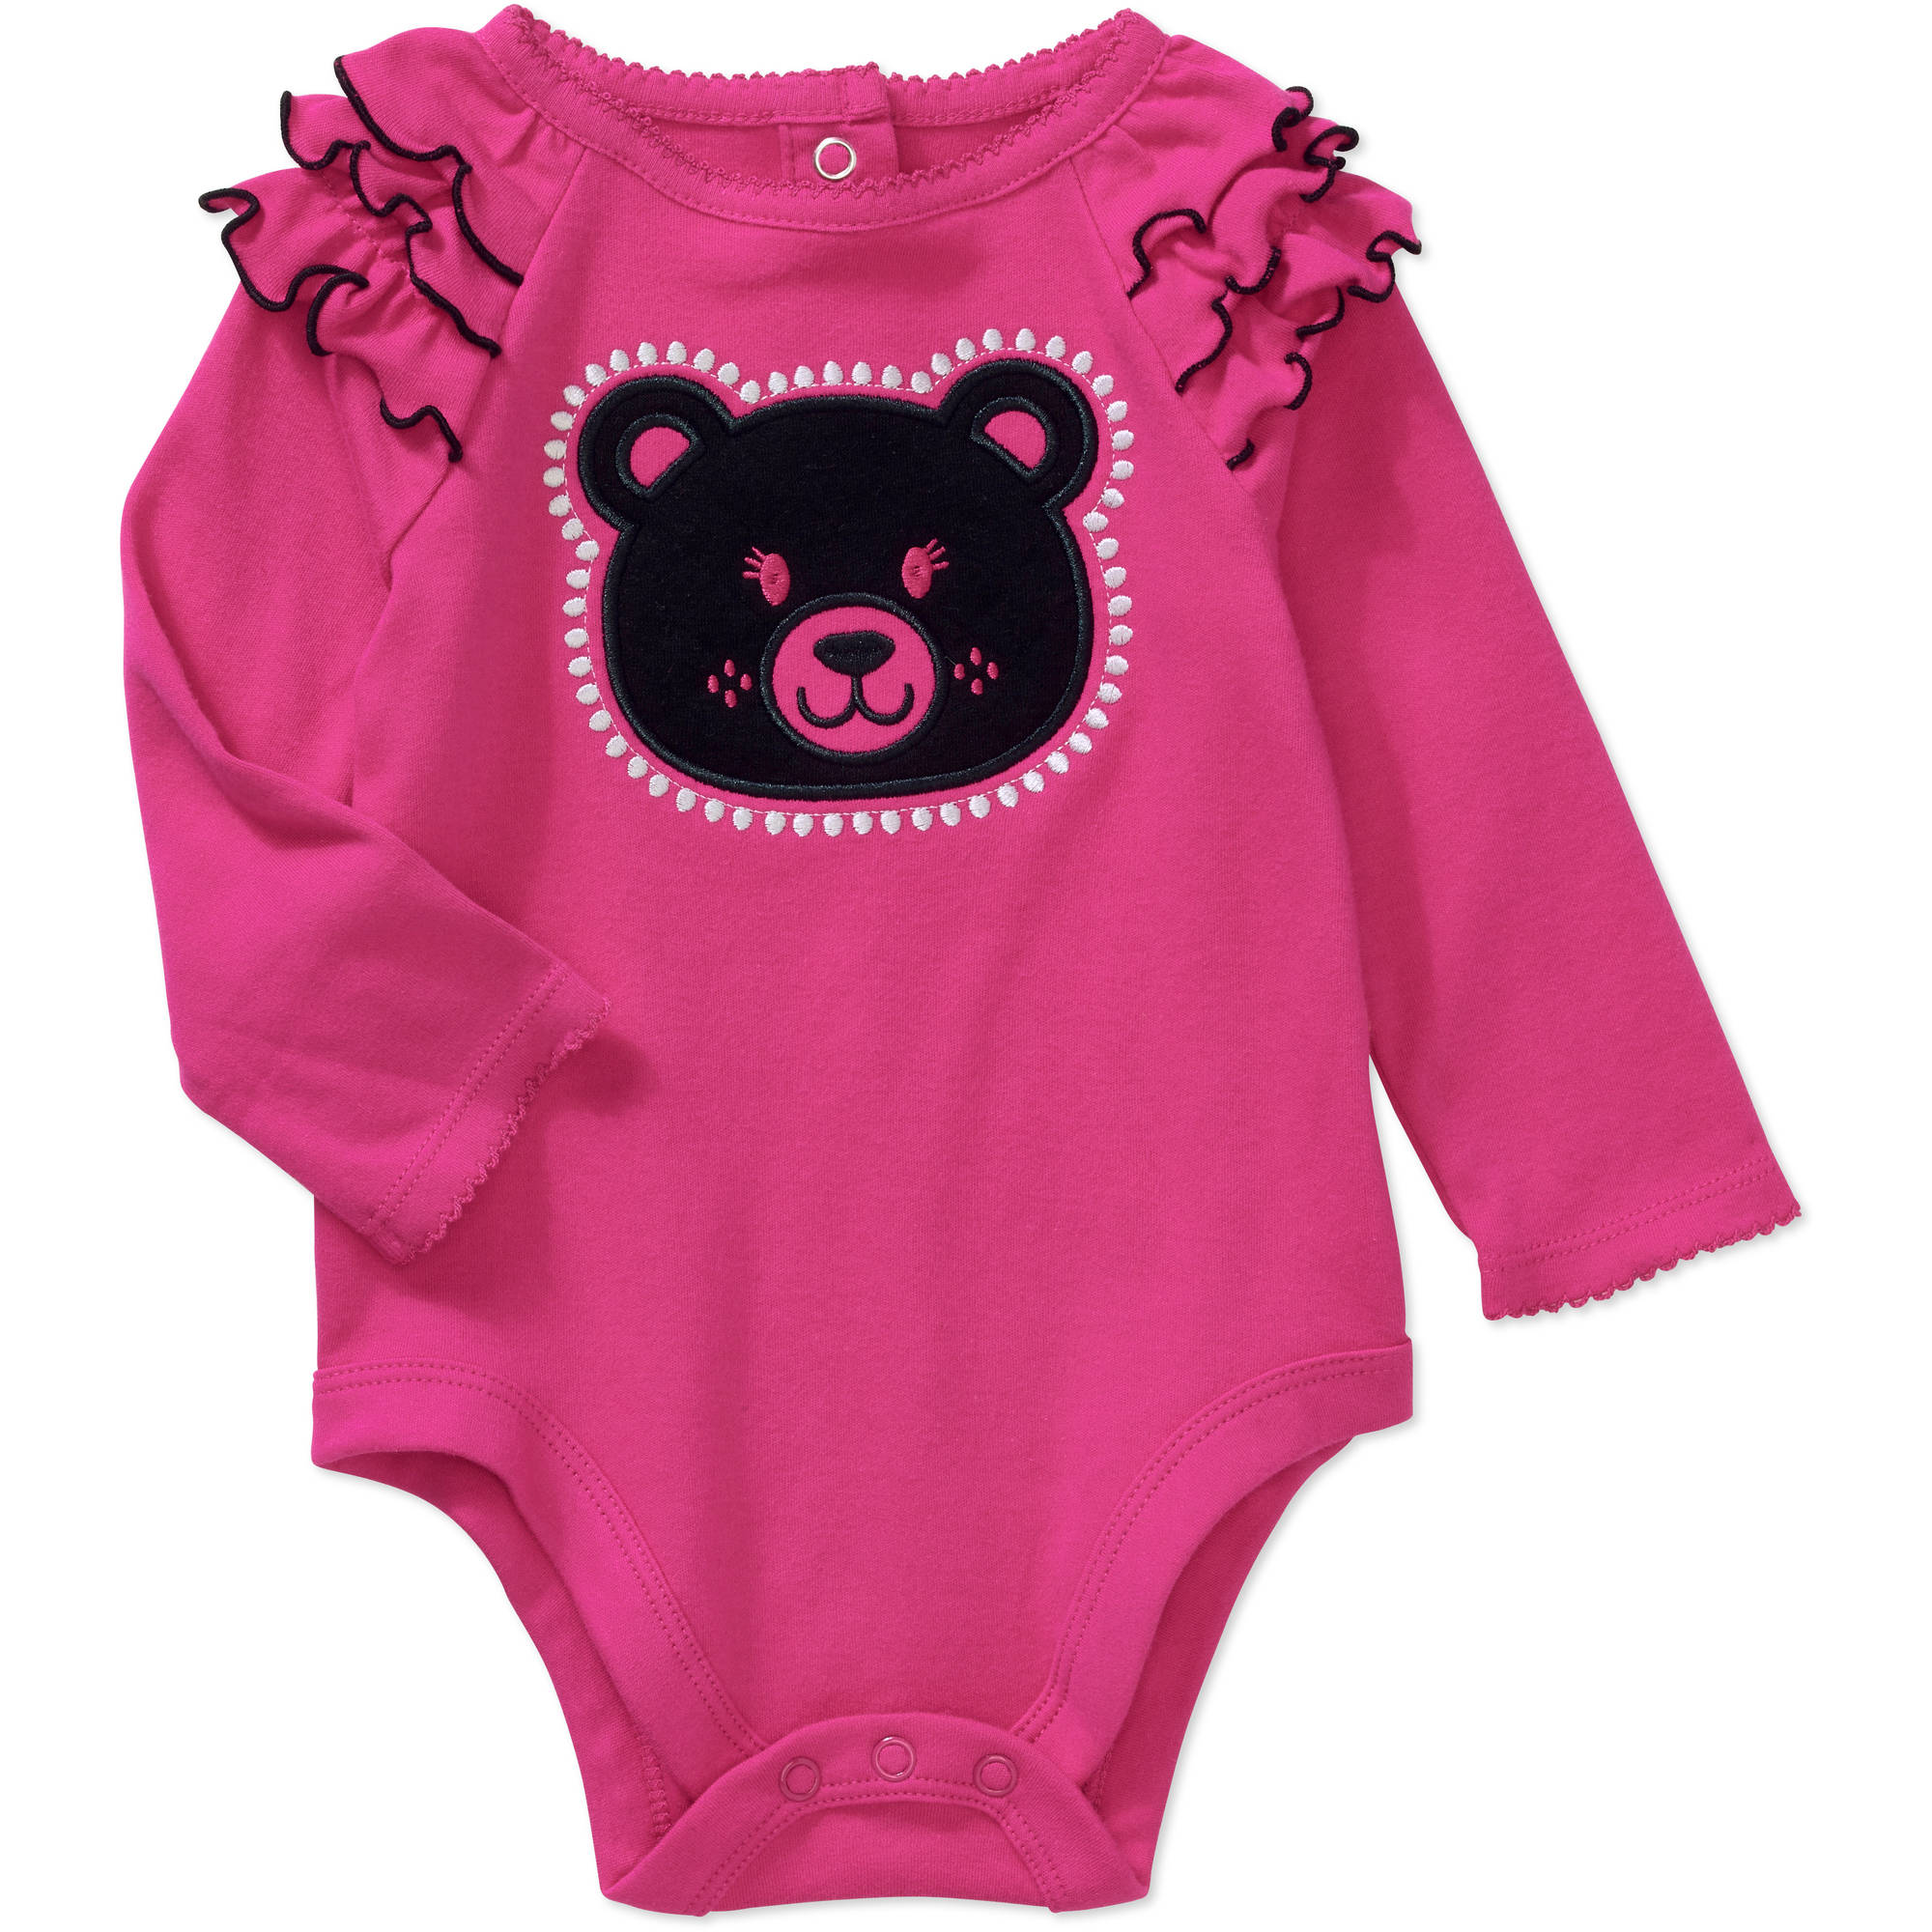 Garanimals Newborn Baby Girl Long Sleeve Raglan Flutter Graphic Bodysuit